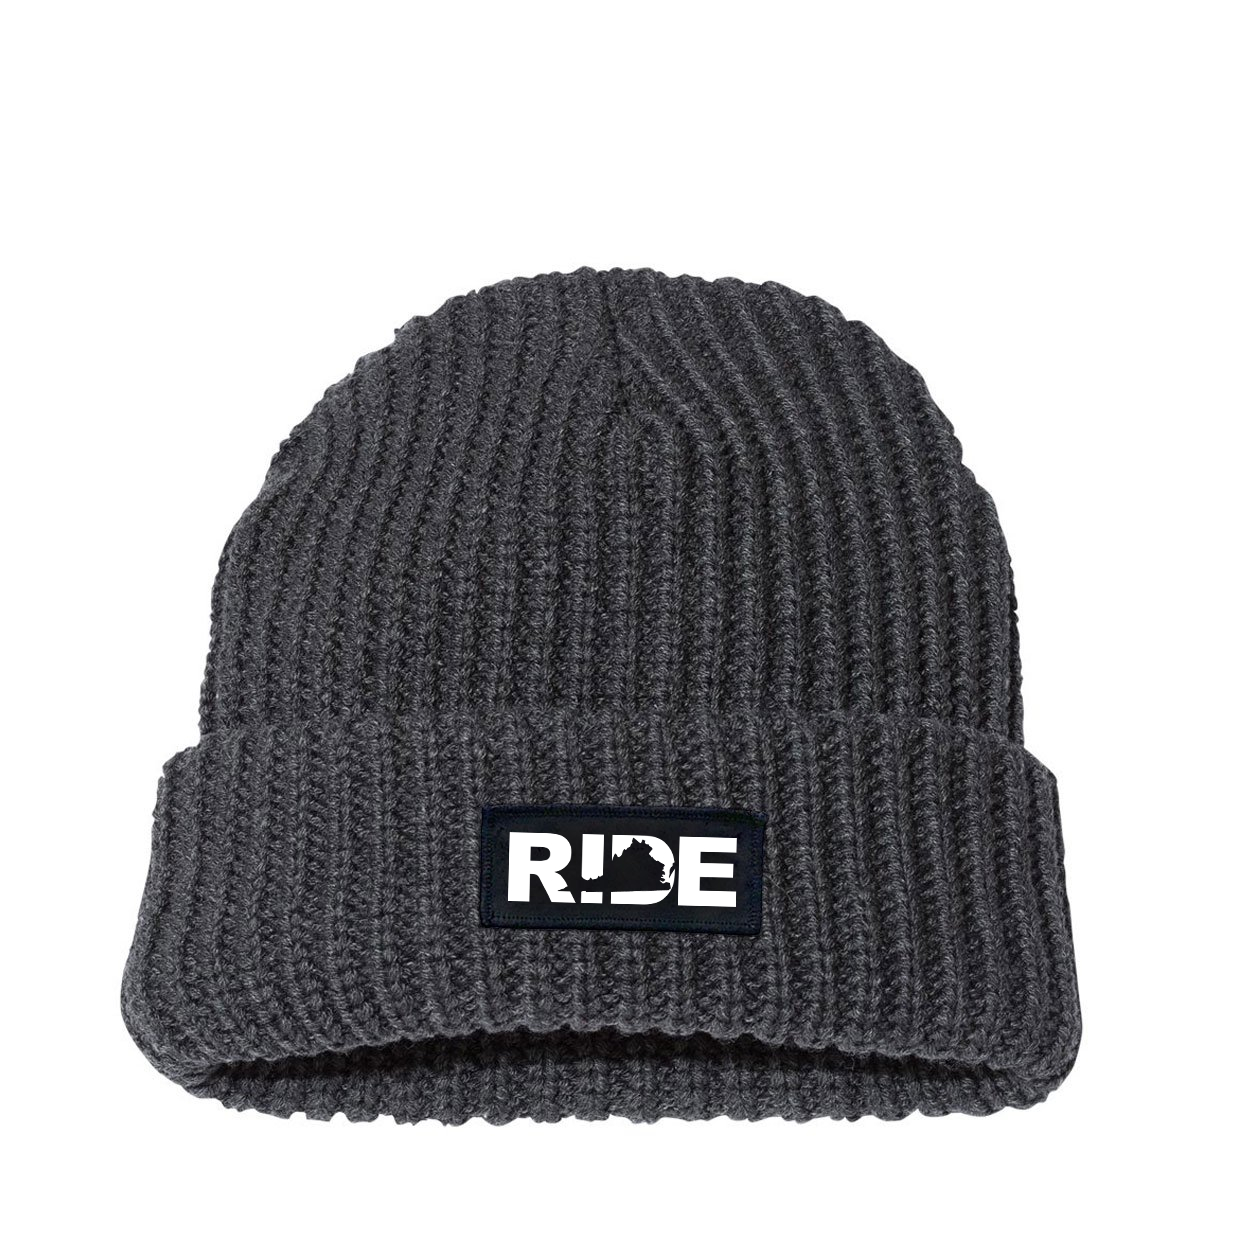 Ride Virginia Night Out Woven Patch Roll Up Jumbo Chunky Knit Beanie Charcoal (White Logo)